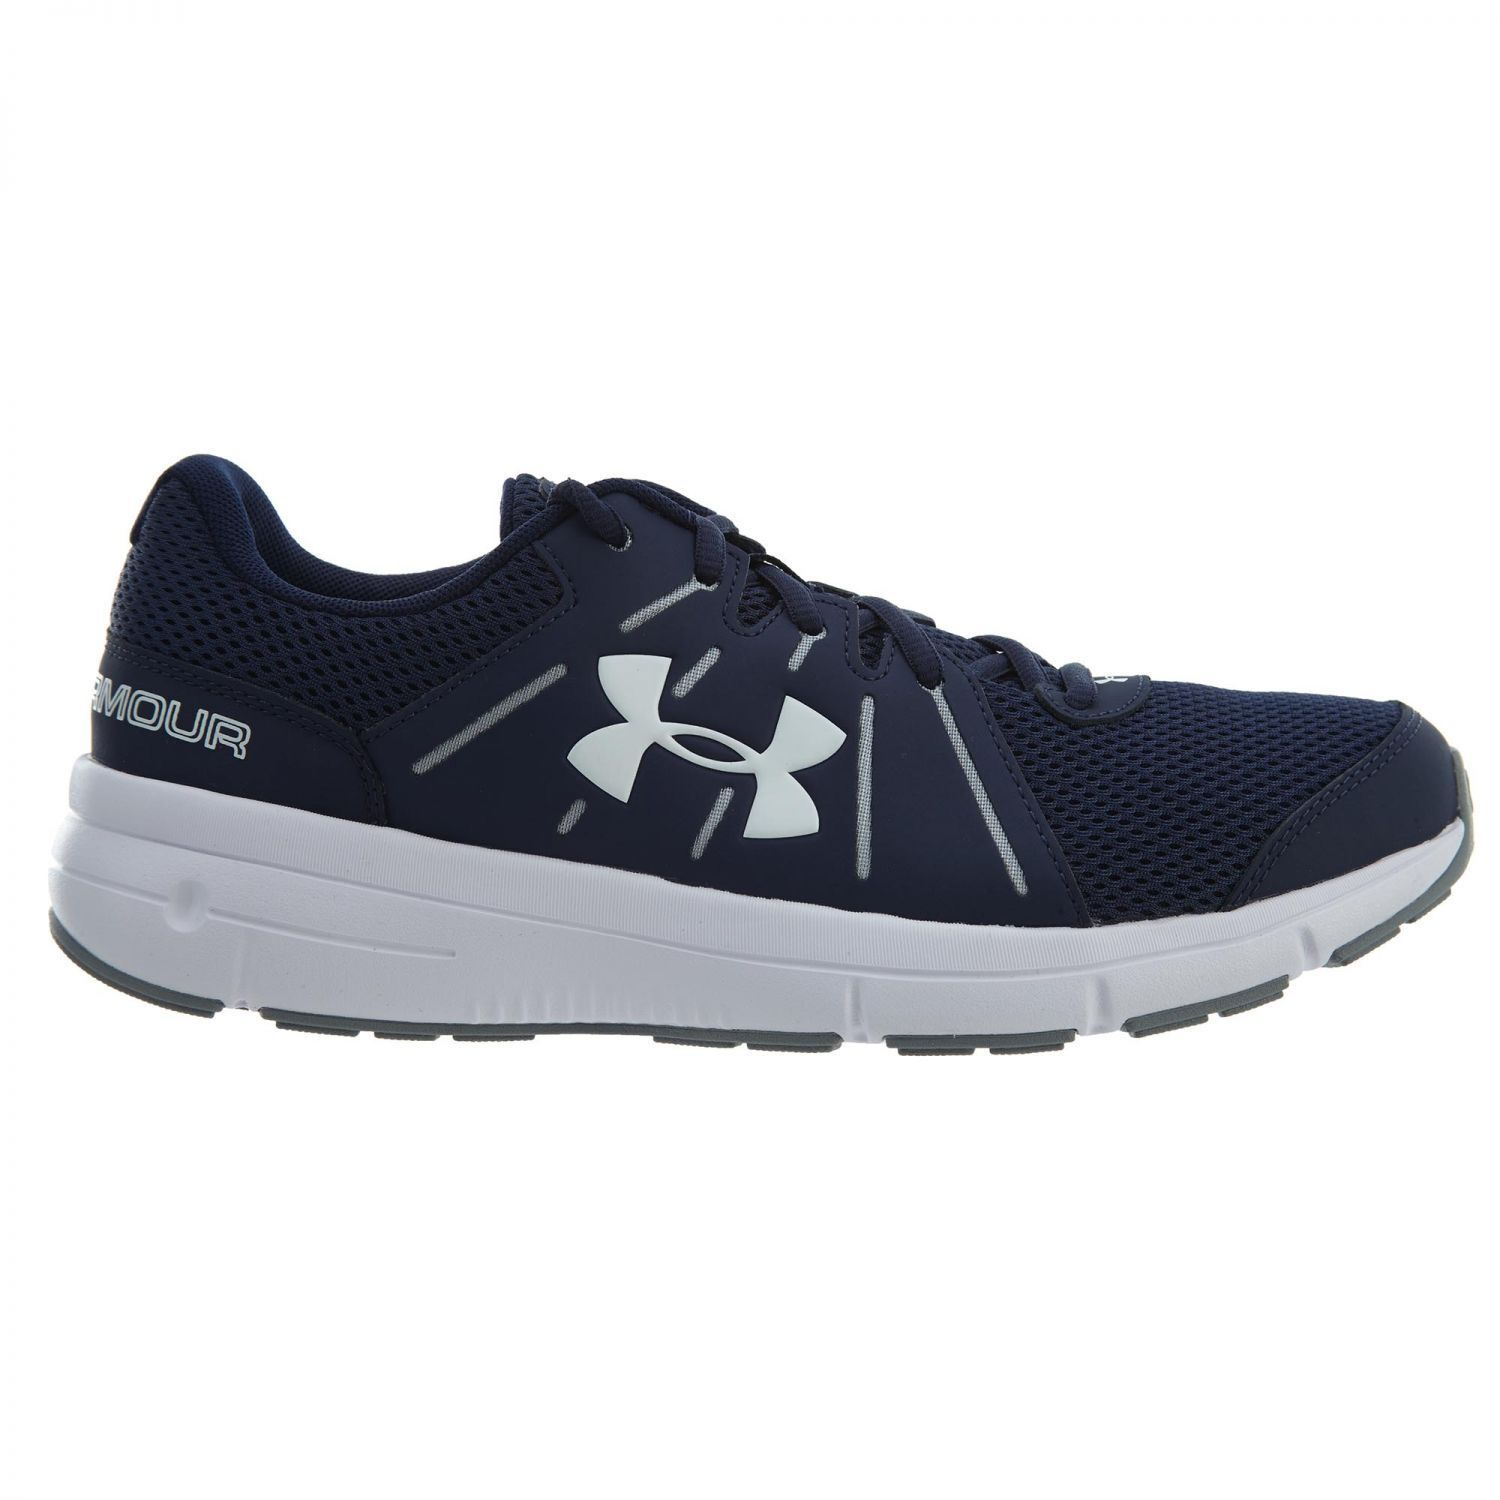 Under Armour Dash RN 2 Uomo 1285671-410 Navy Steel White Running Shoes Size 10